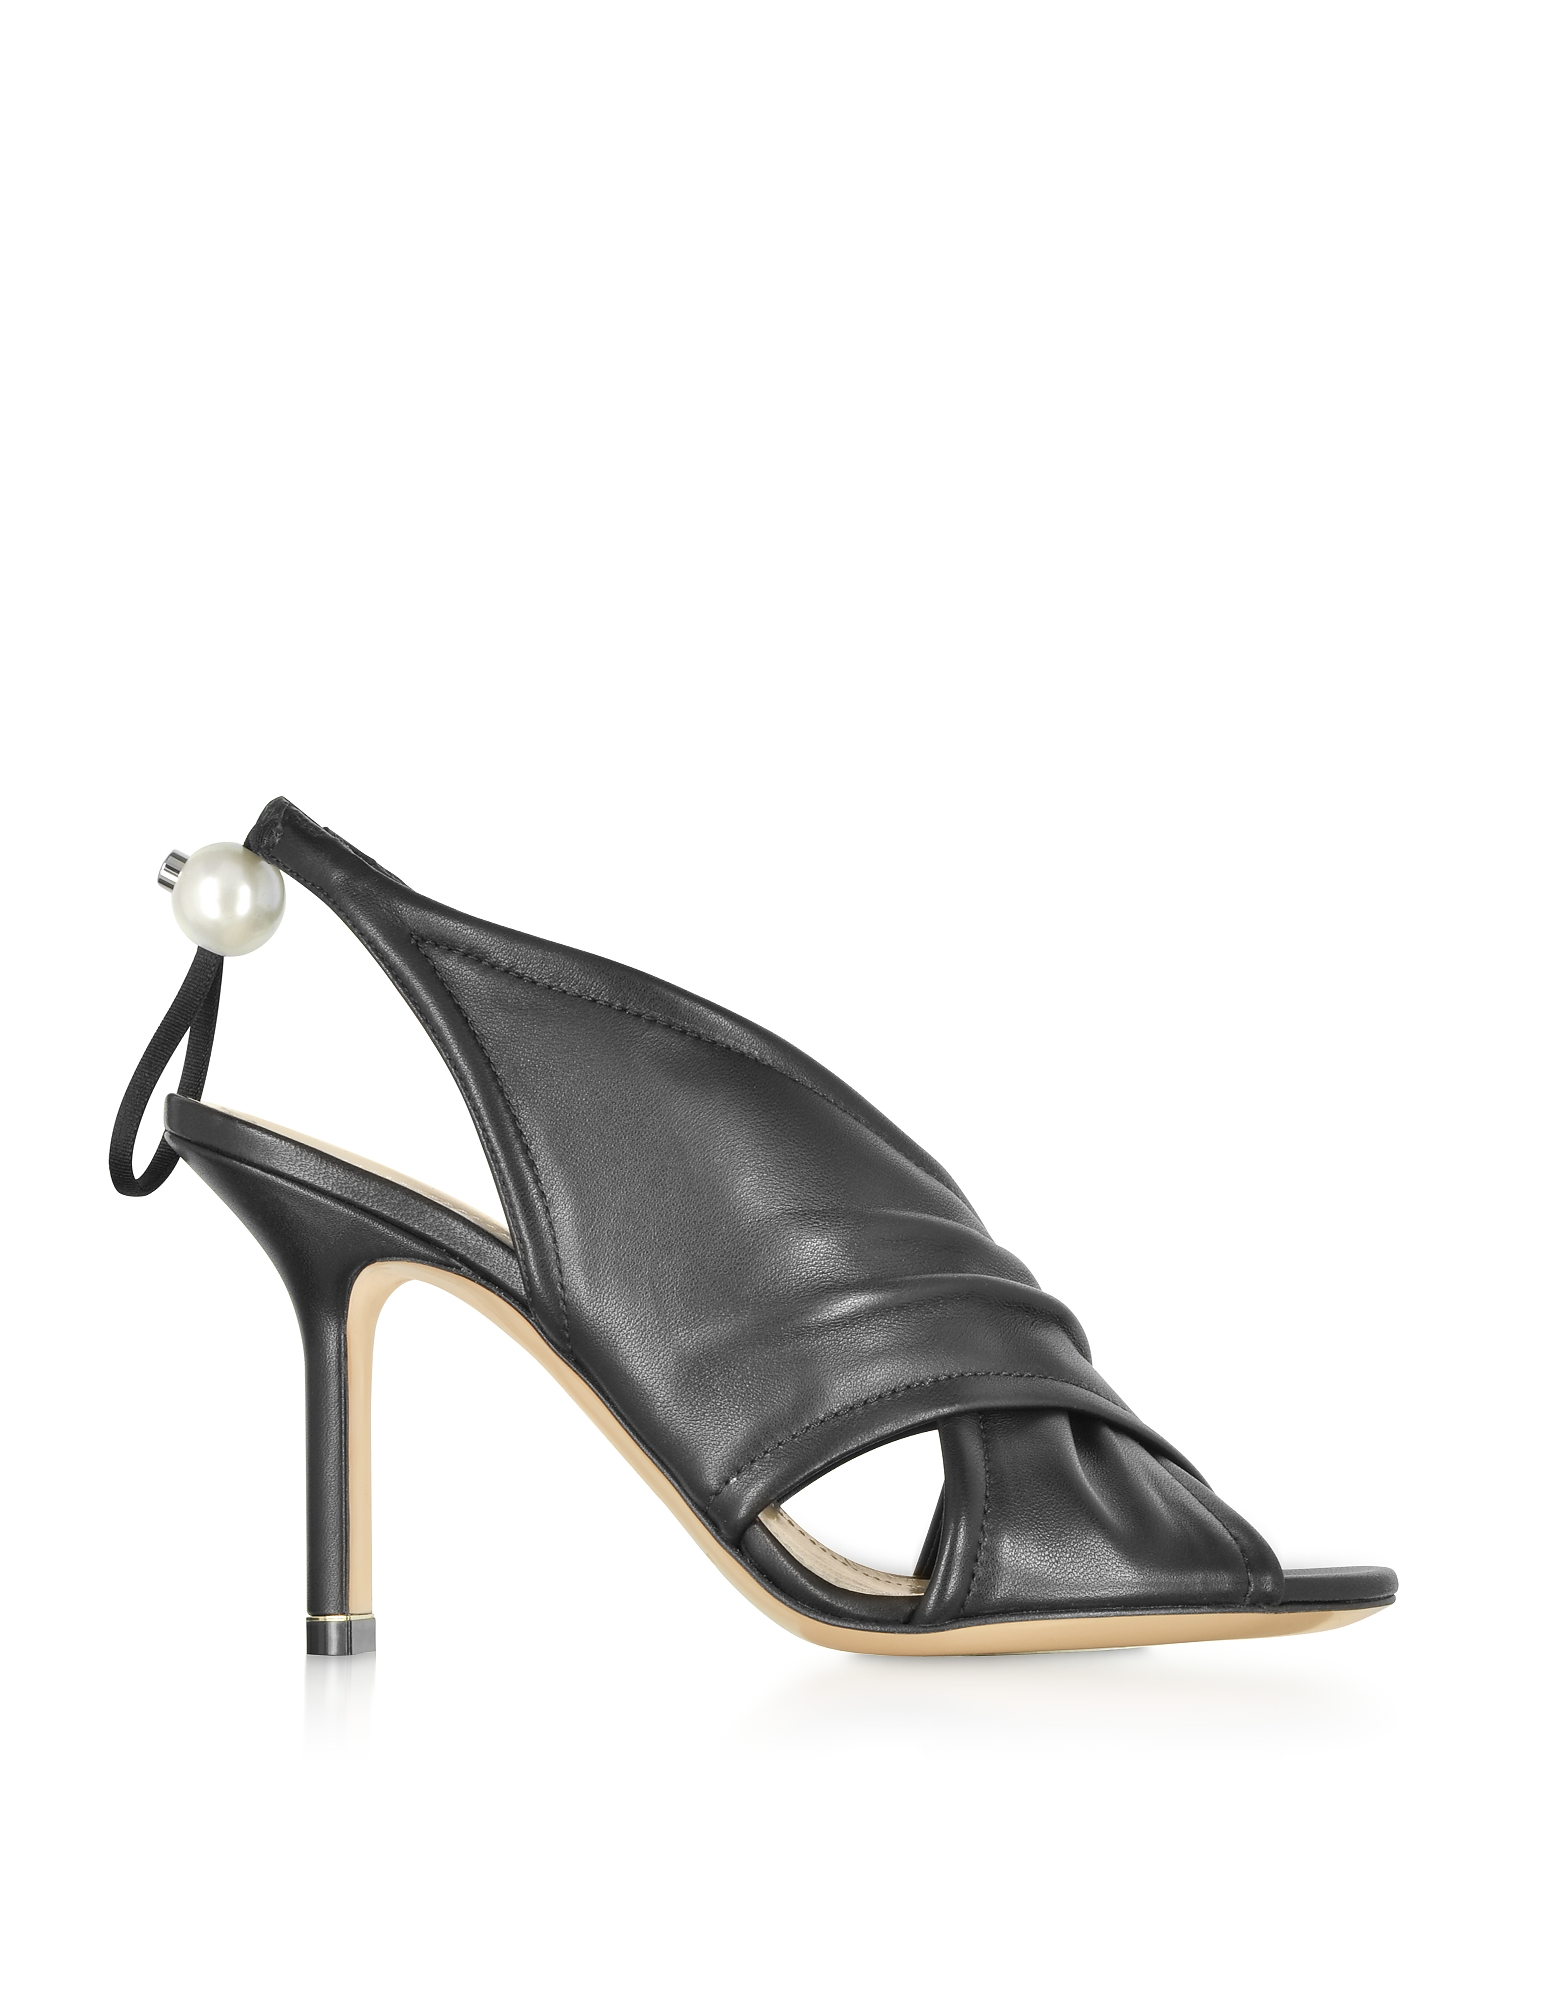 Nicholas Kirkwood Designer Shoes, Black Nappa 90mm Delfi Sandals